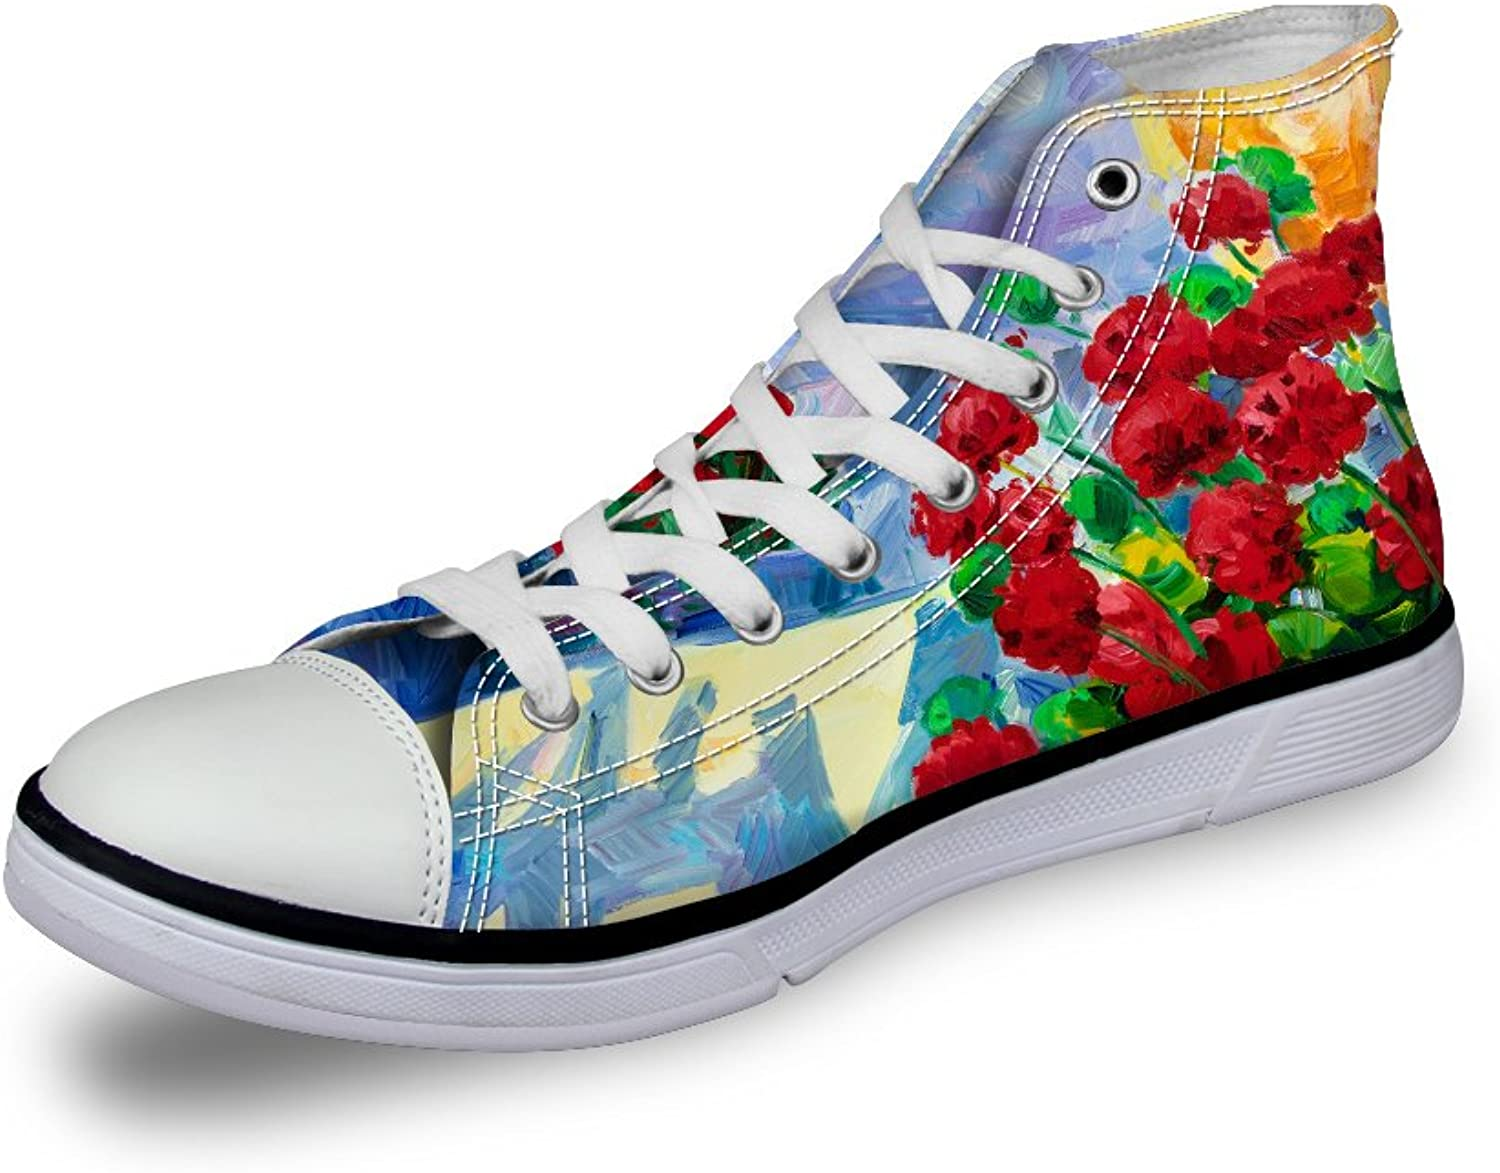 Frestree Casual Sneakers for Women Ccanvas shoes